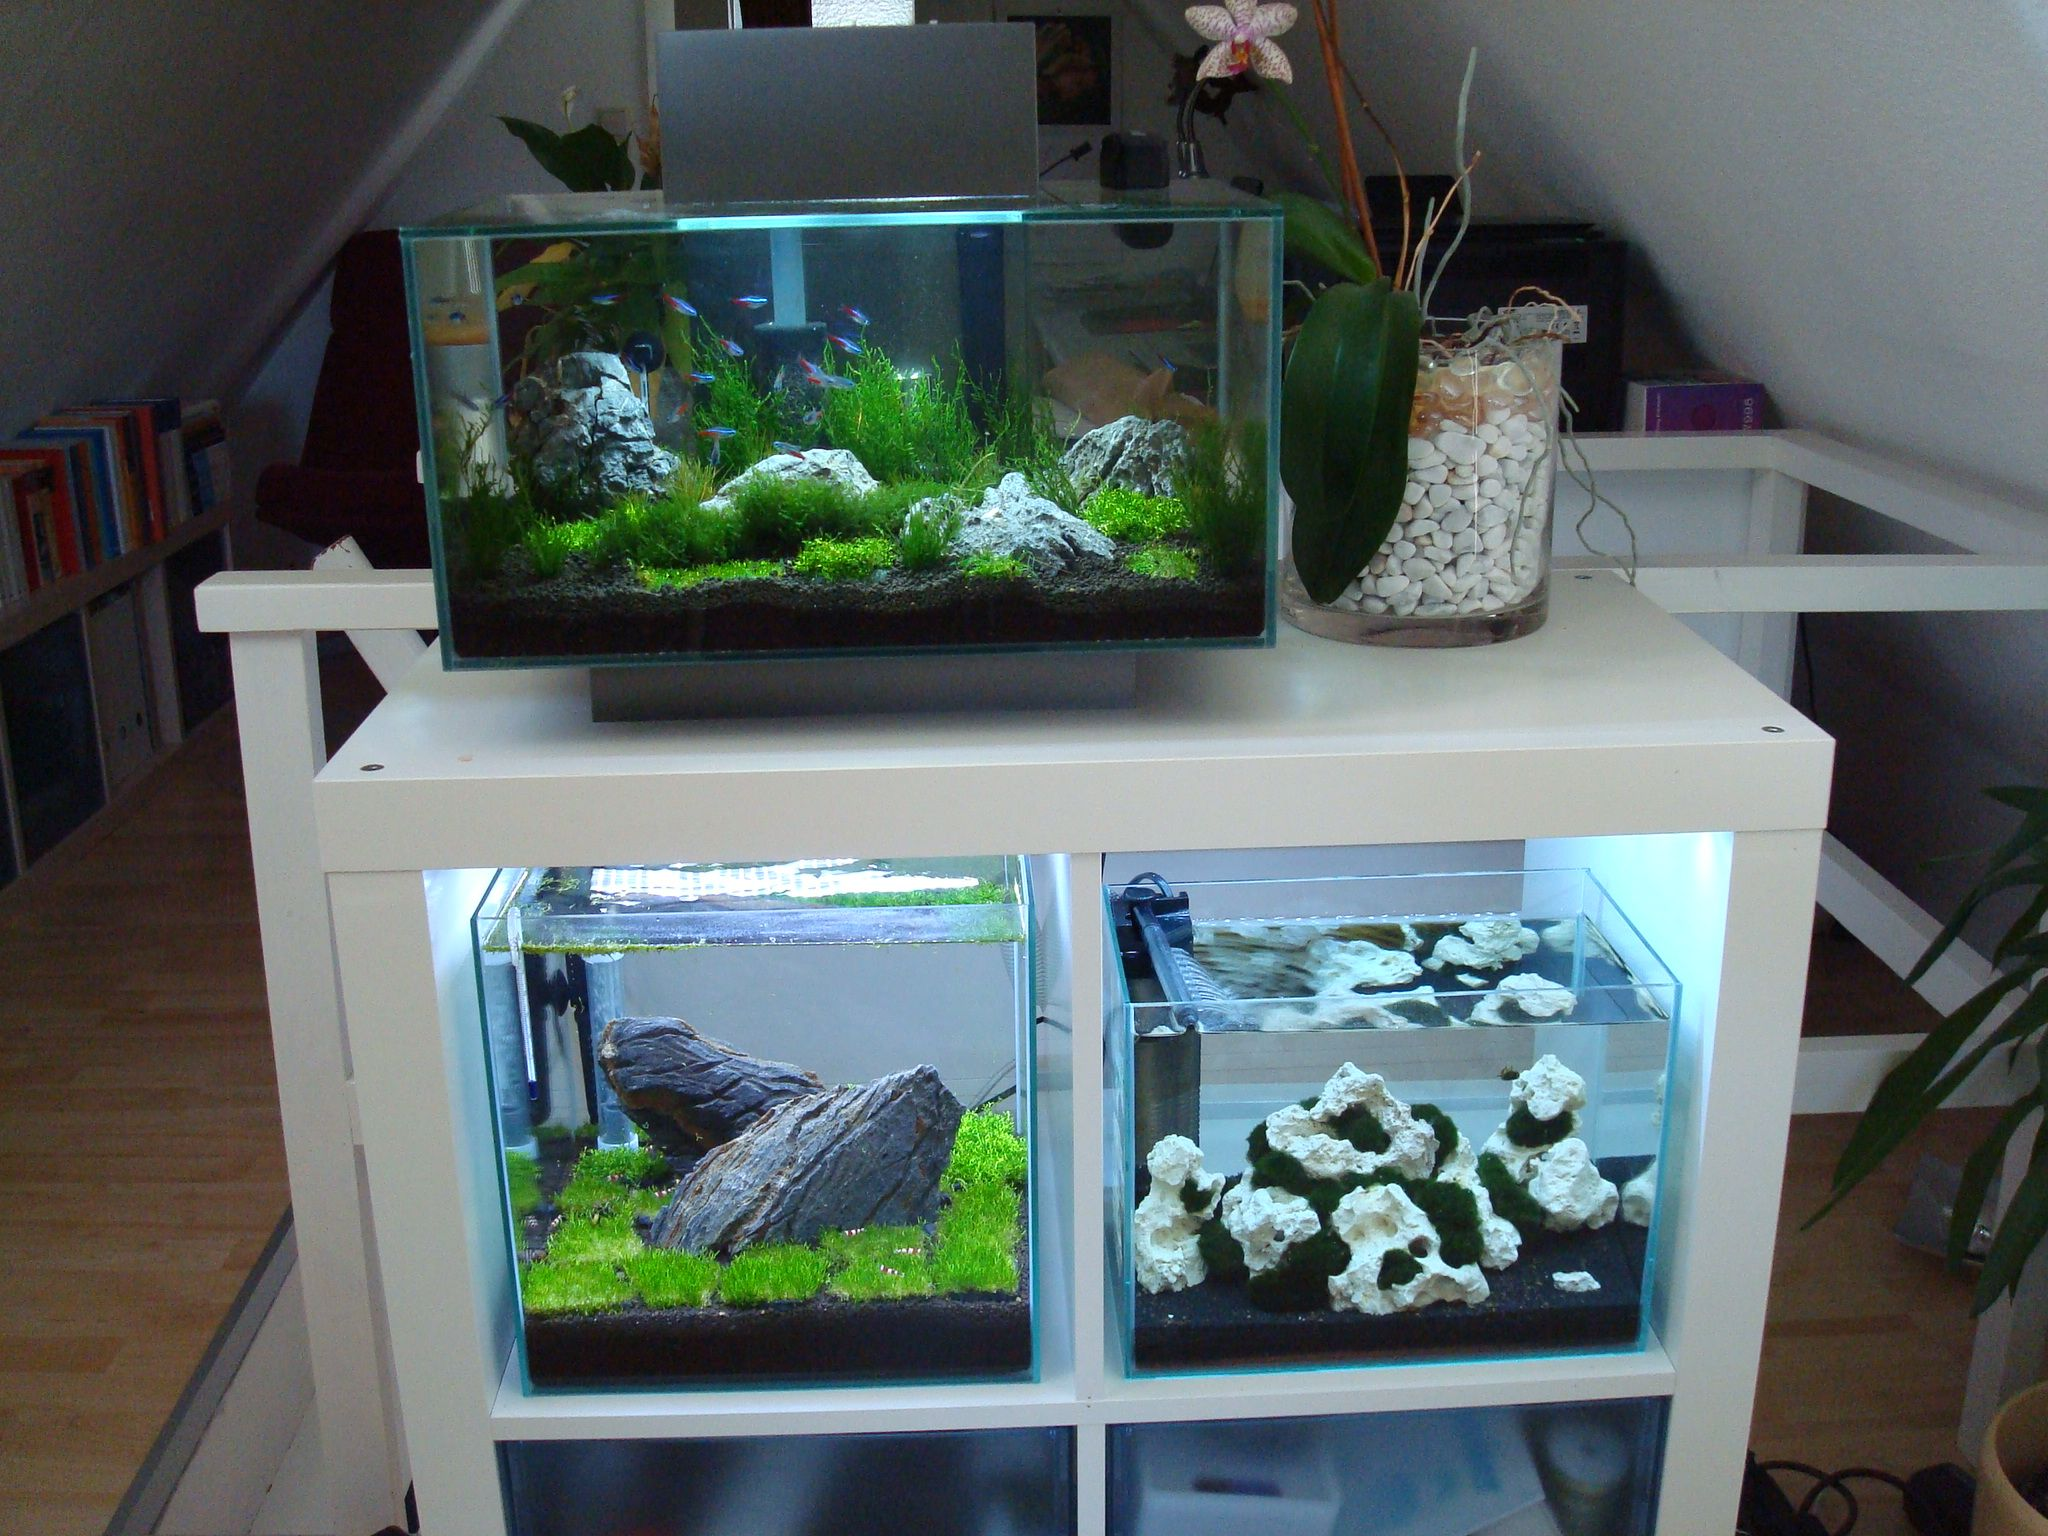 Mueble Acuario Ikea Ikea Expedit With Aquarium Google Search Muebles Fish Tank